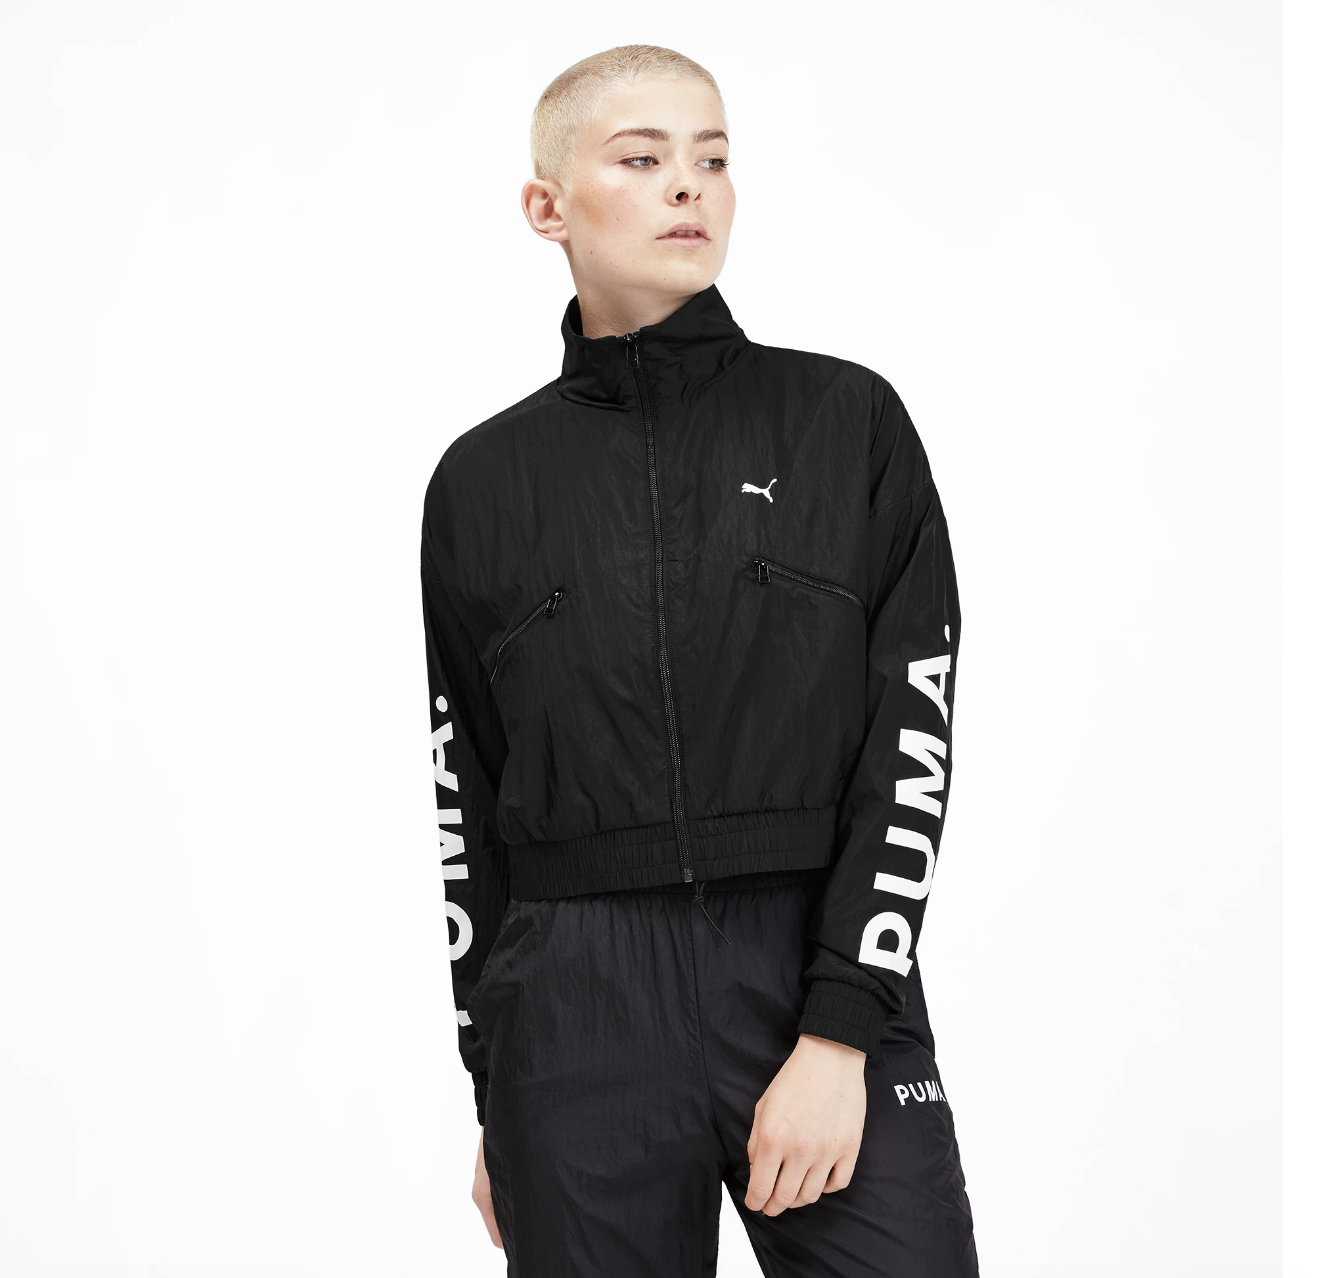 """A Puma model wears the Chase Women's Woven Jacket, which has a black color and white lettering on the side that says """"Puma"""""""